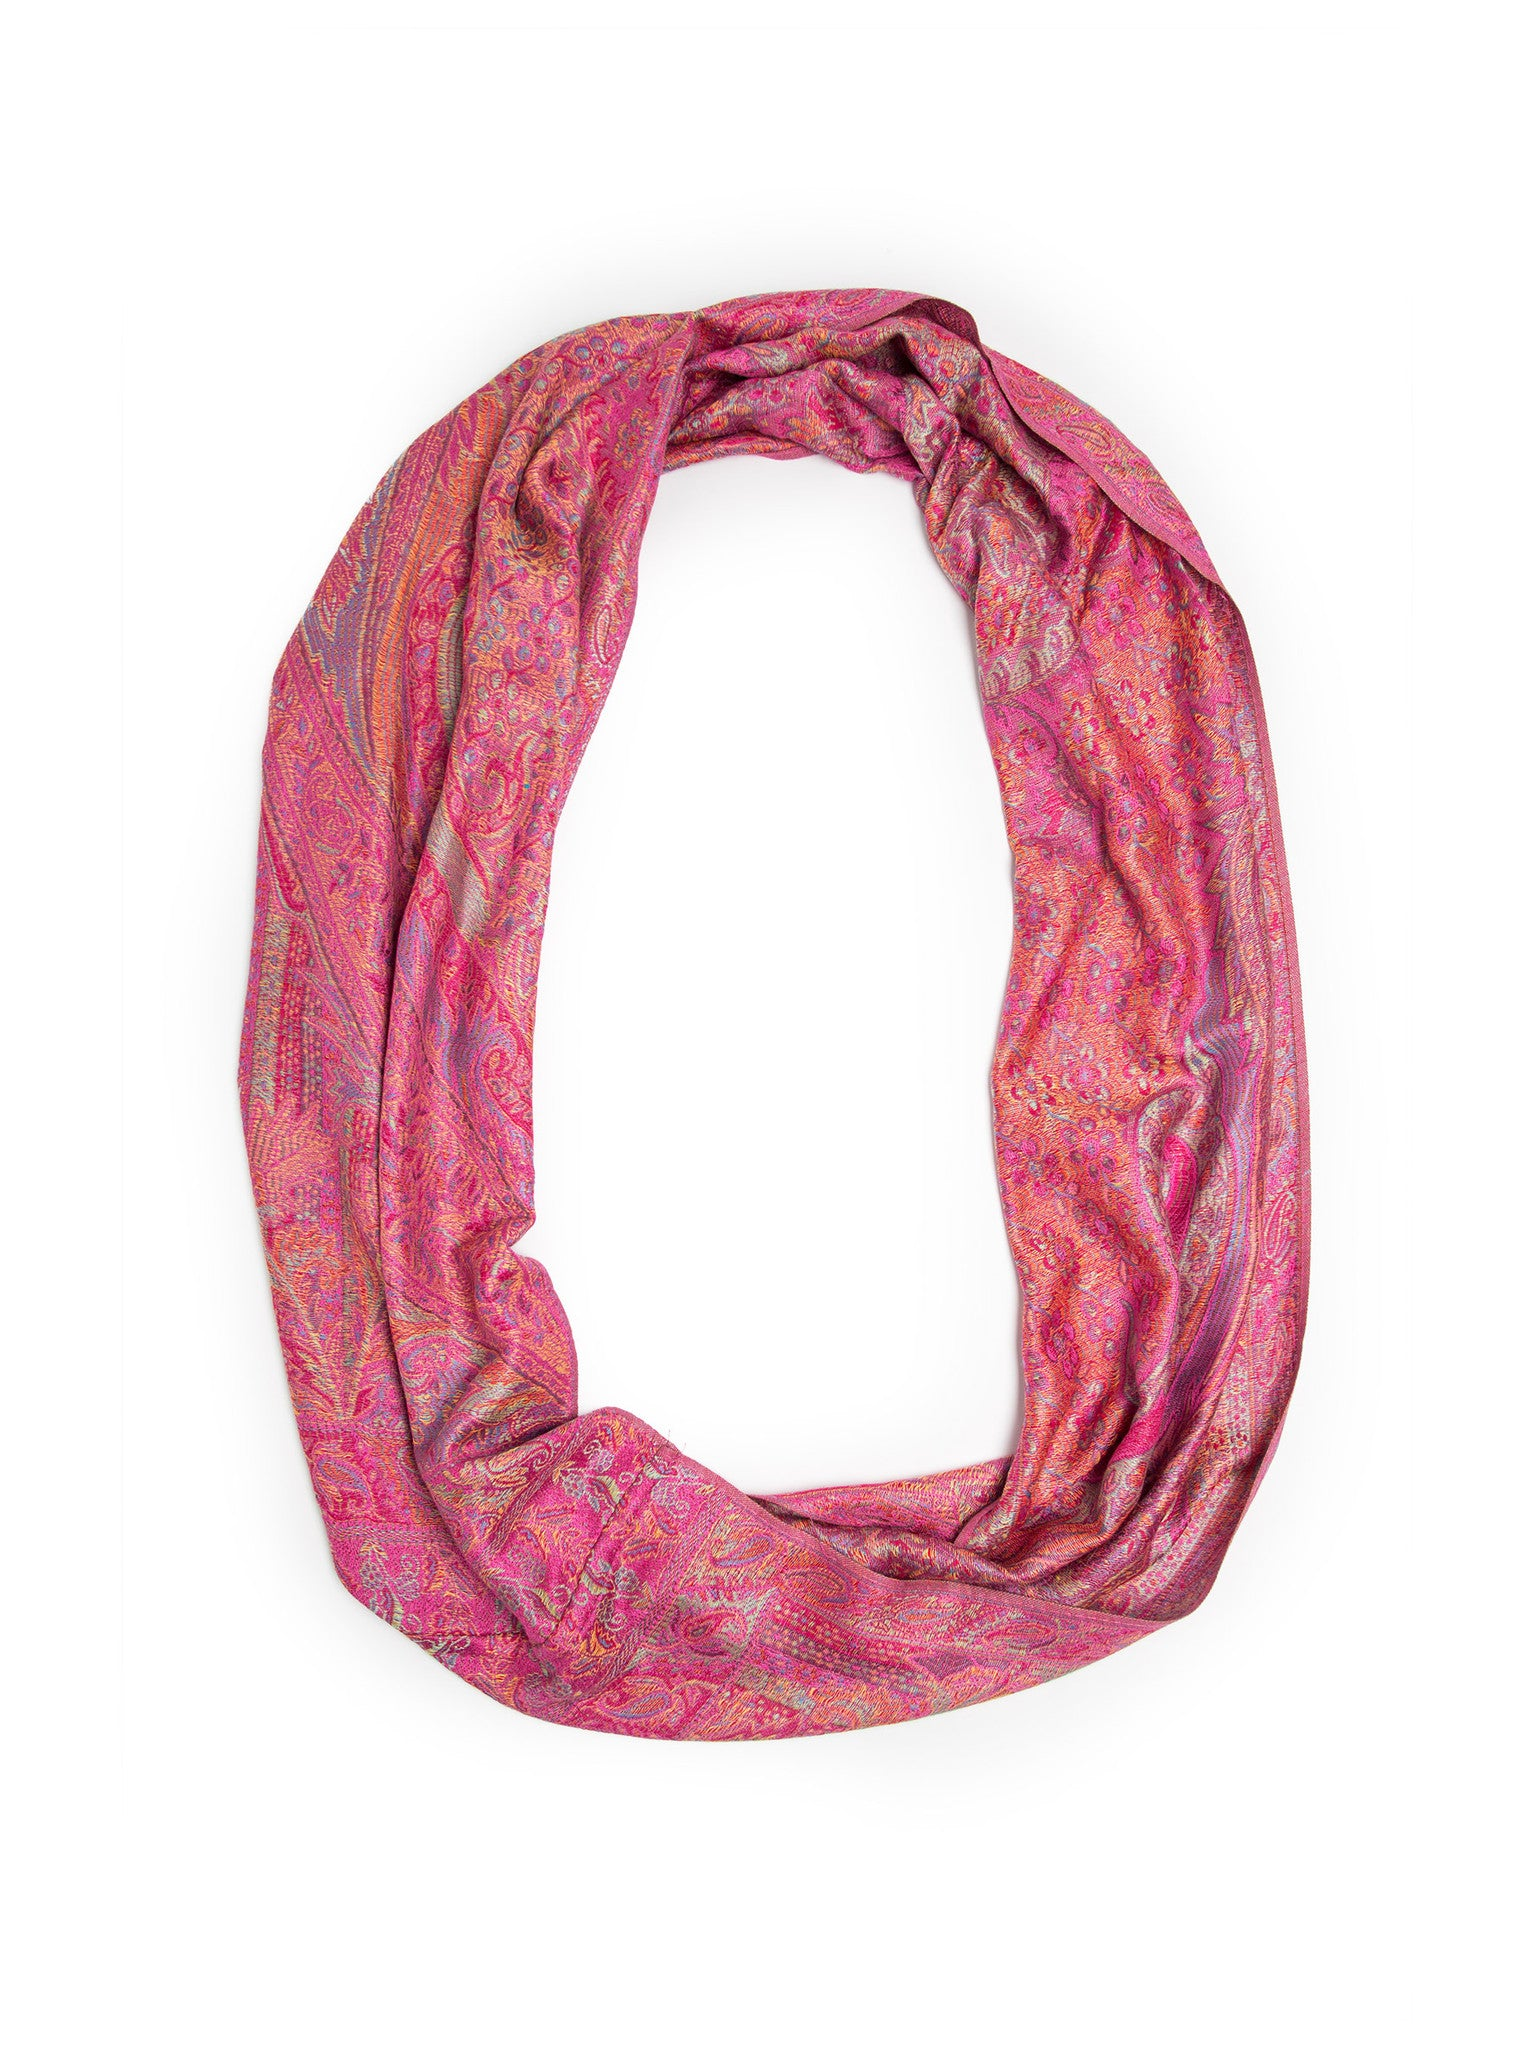 Scarves - Rajana Infinity Scarf, Richly Colored Rare Pashmina Infinity, -(Hot Pink / One Size) Bohomonde  - 26